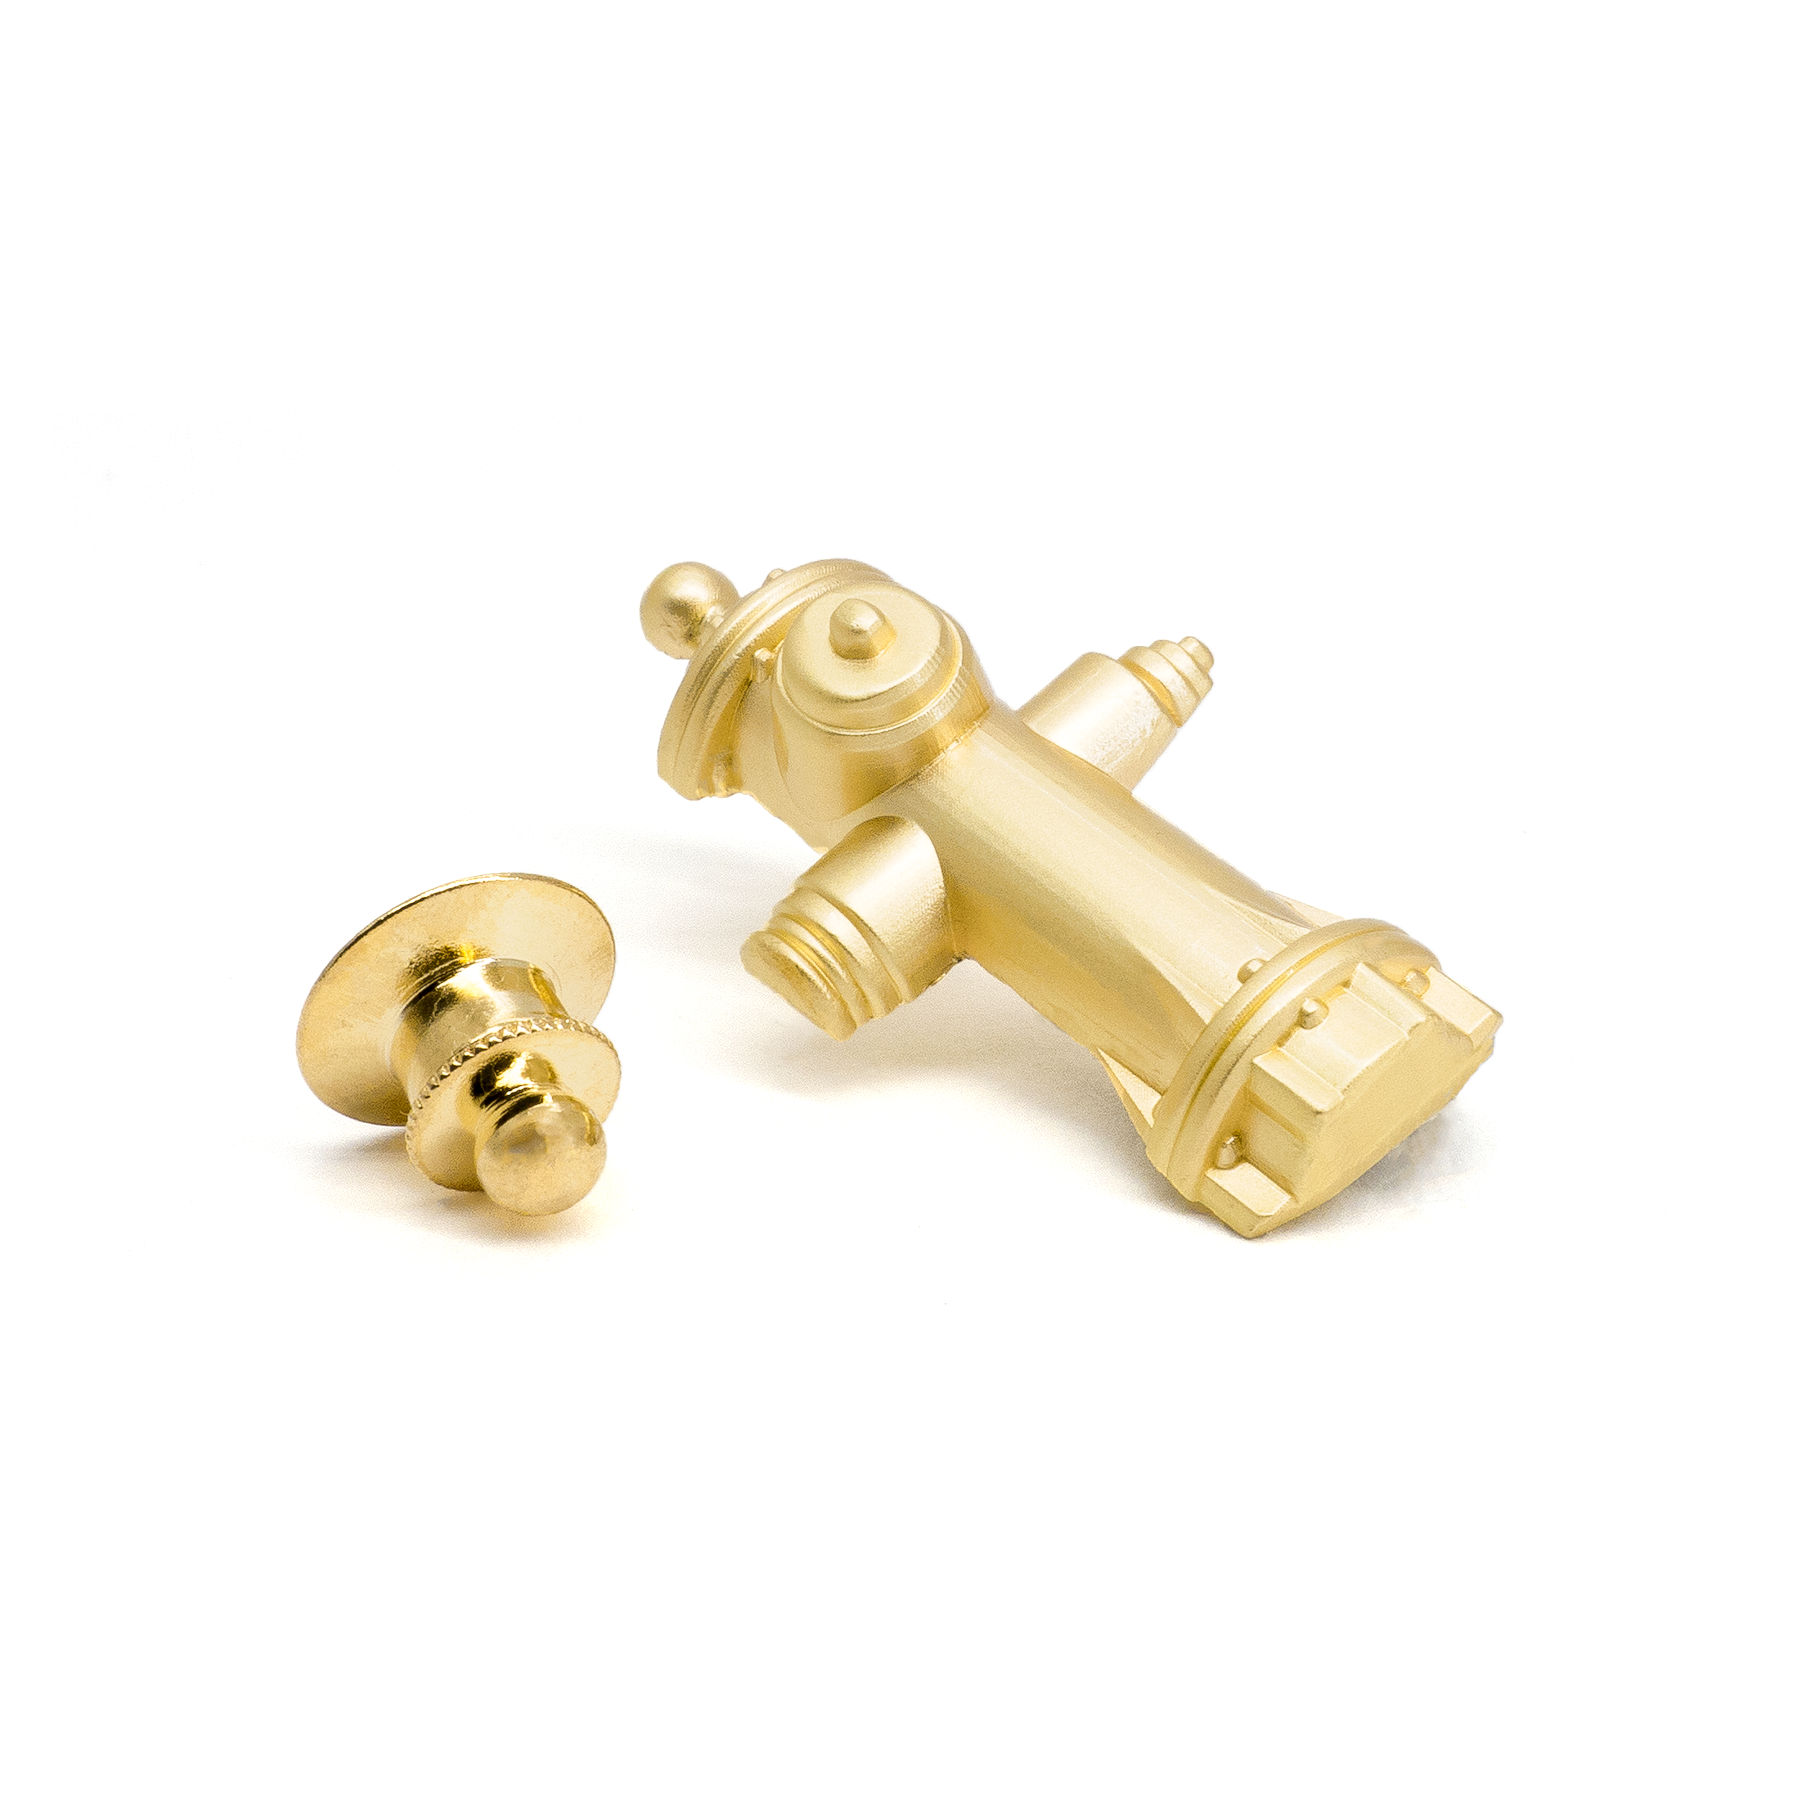 Golden Fire Hydrant molded pin